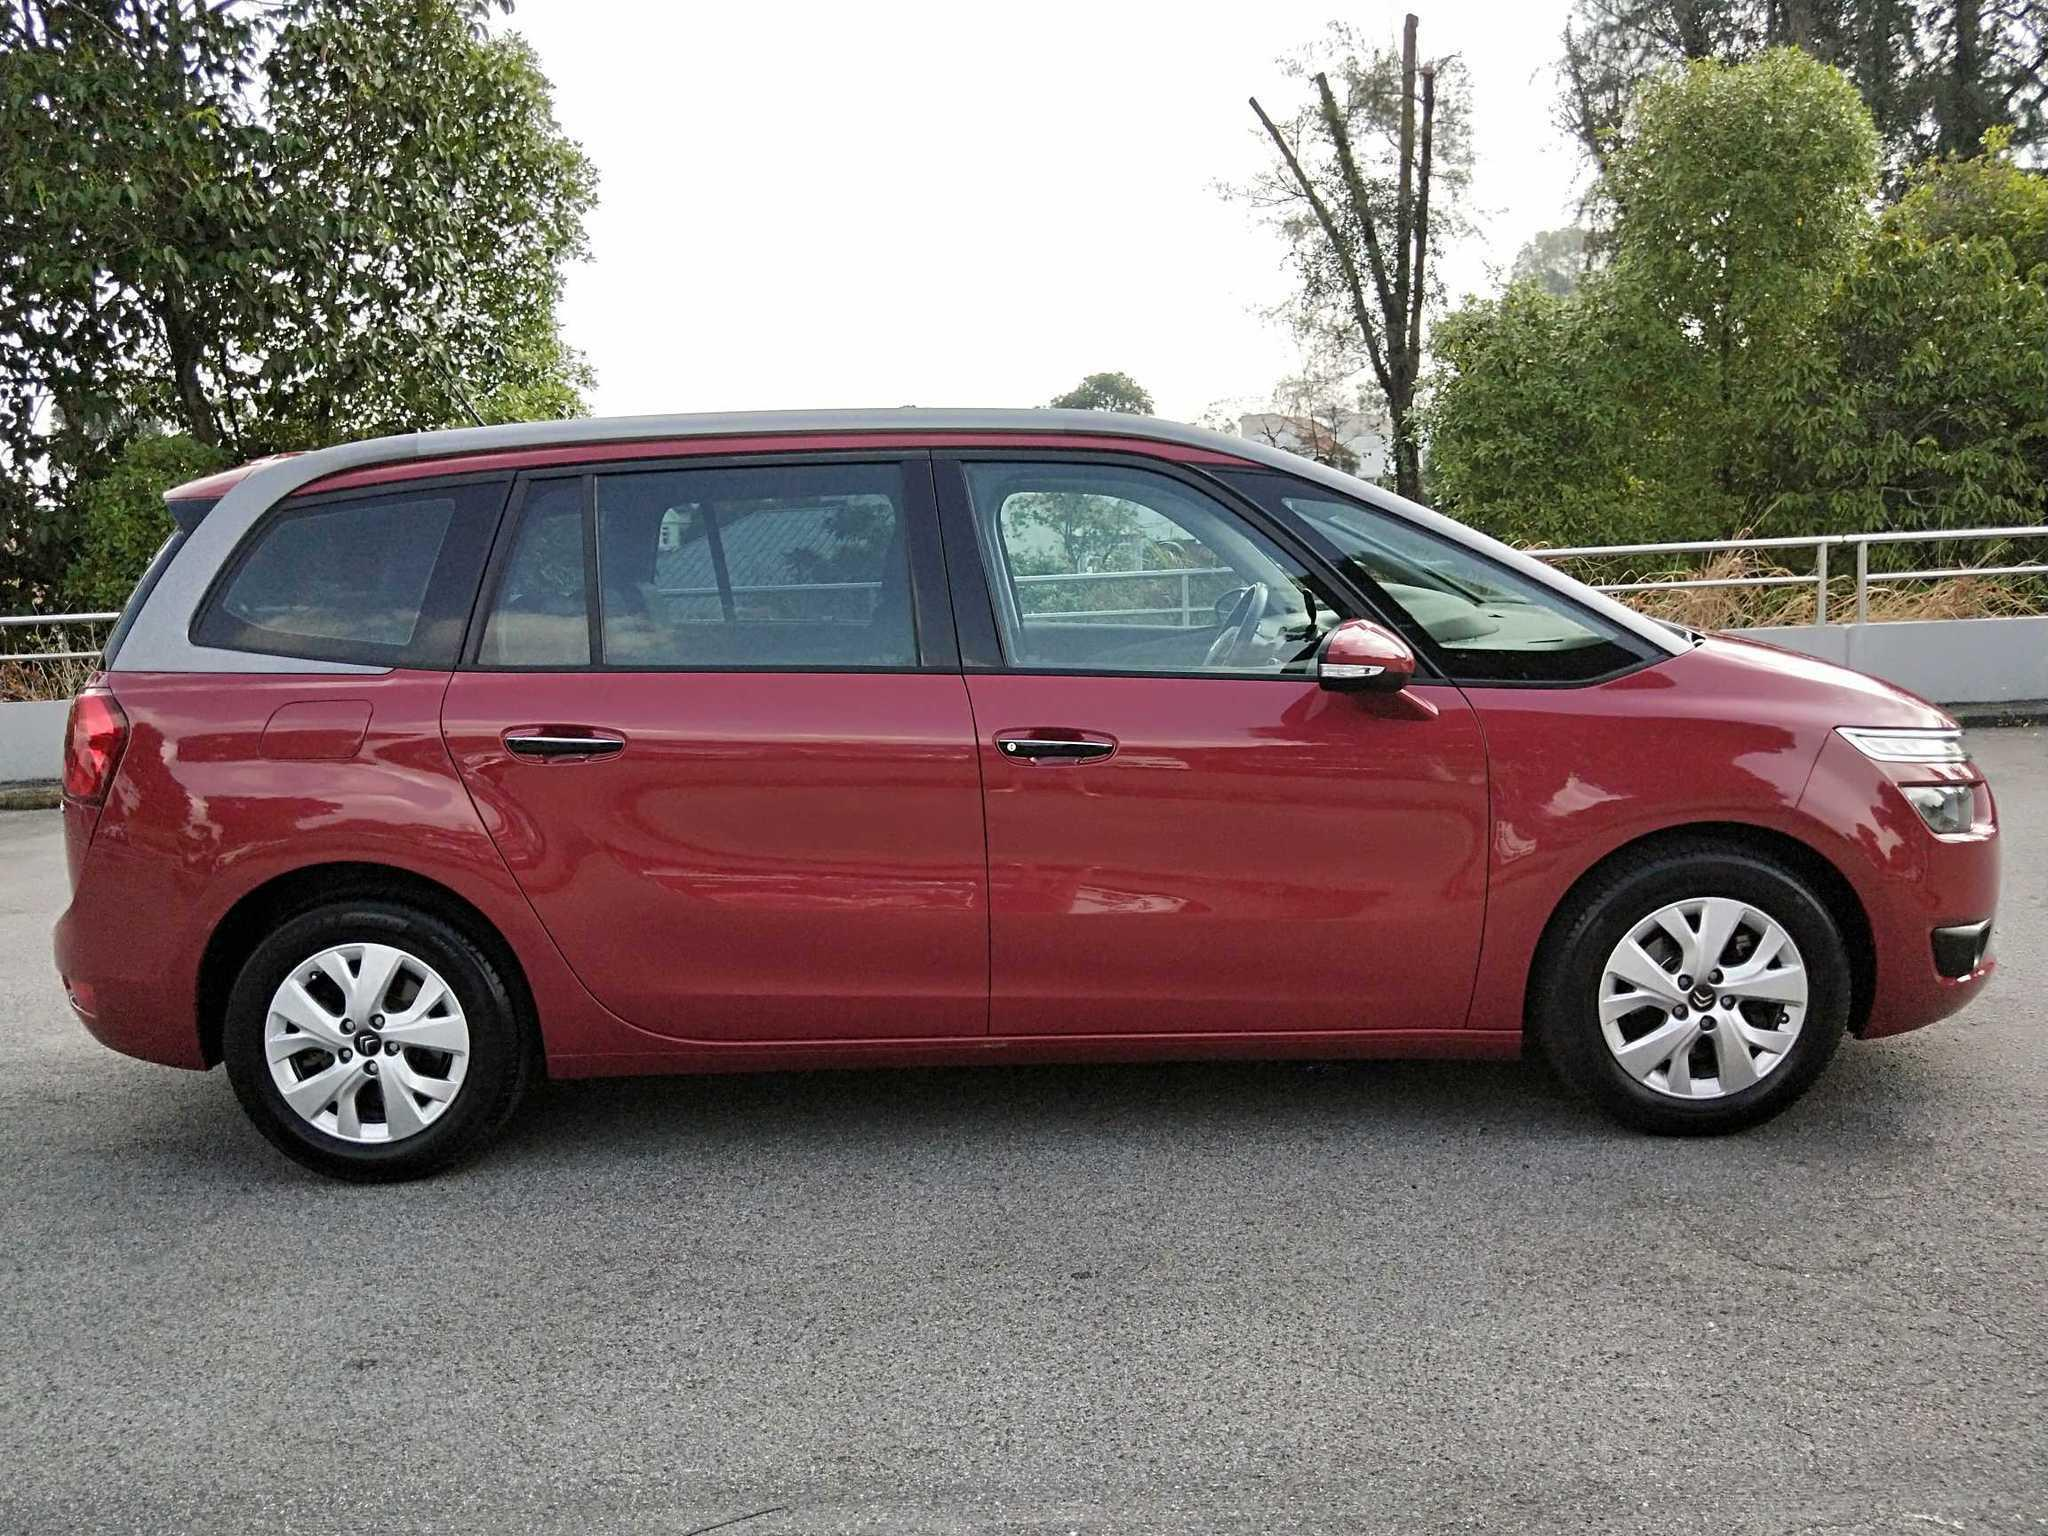 Citroen Grand C4 Picasso 1.6 BlueHDi 120 EAT6 ML Manual